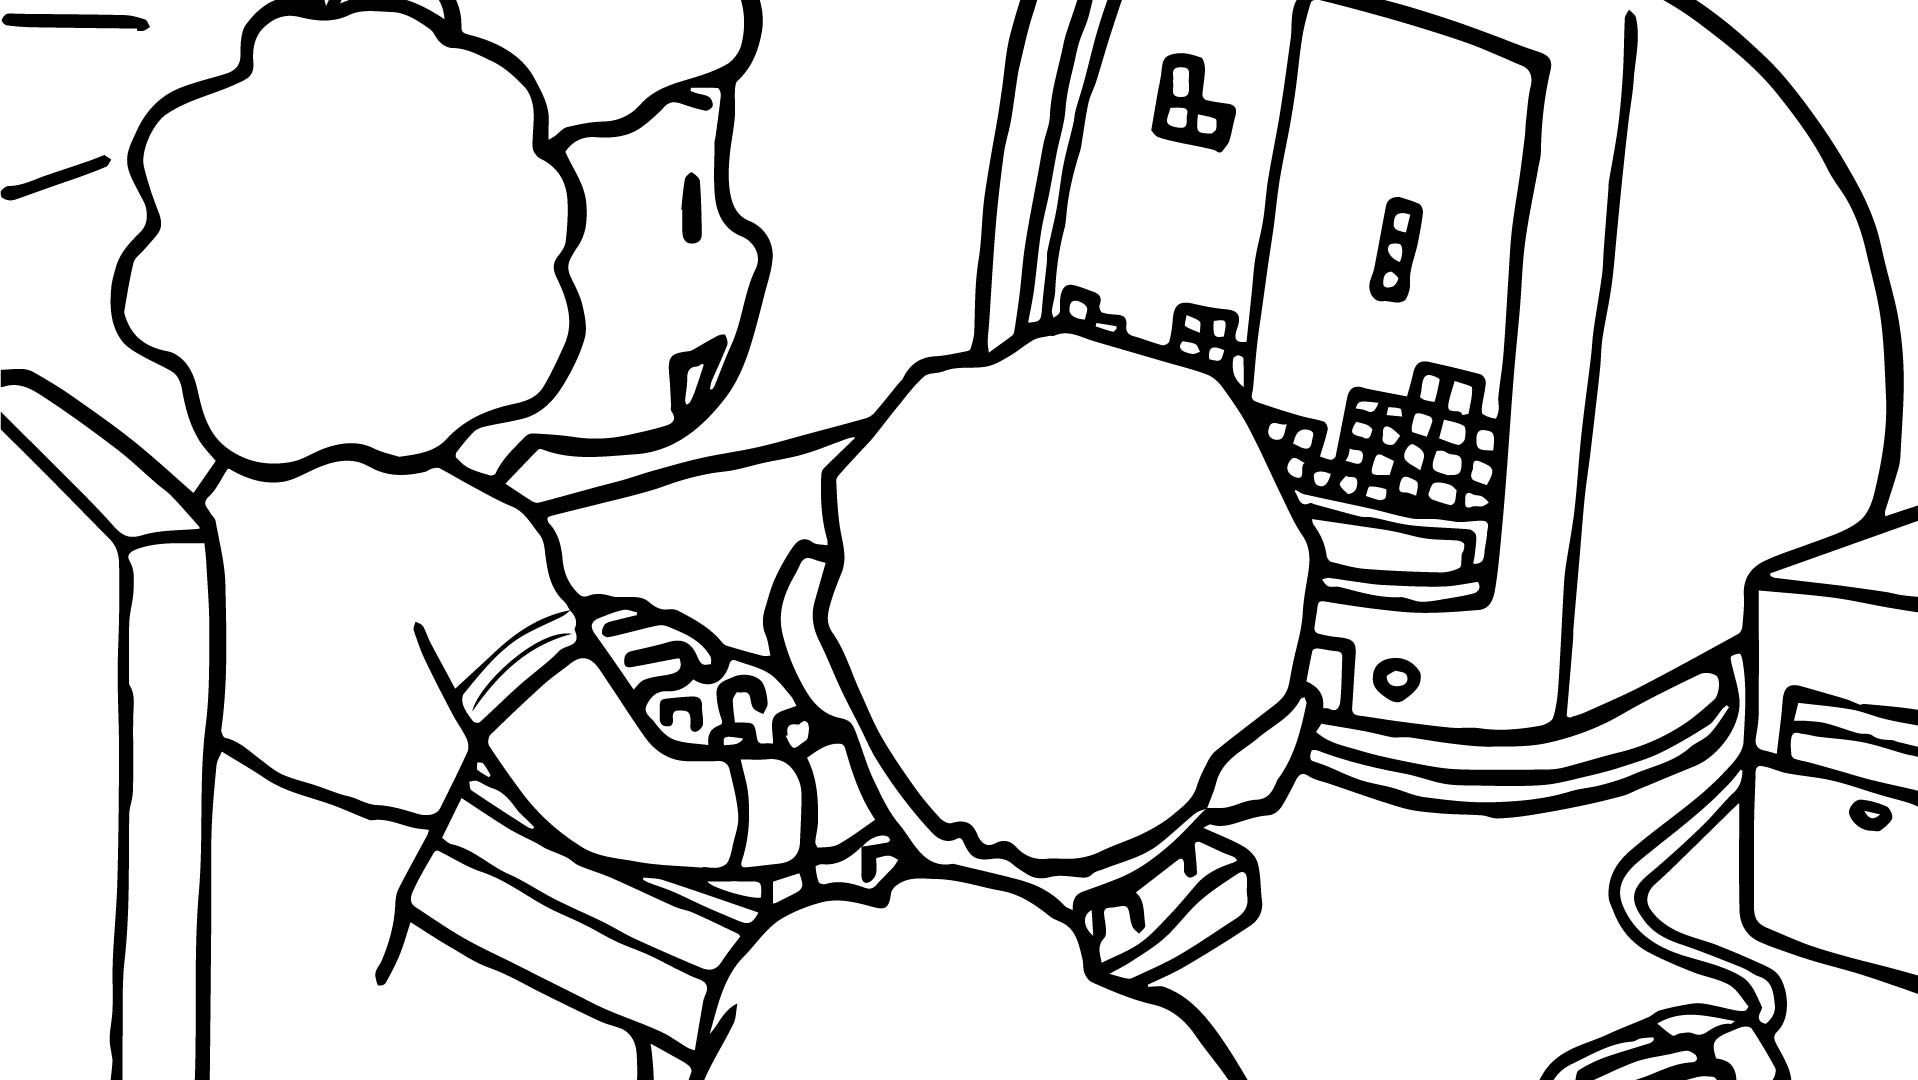 1918x1080 Sparrows And Computer Coloring Page Free Printable Pages For Kids